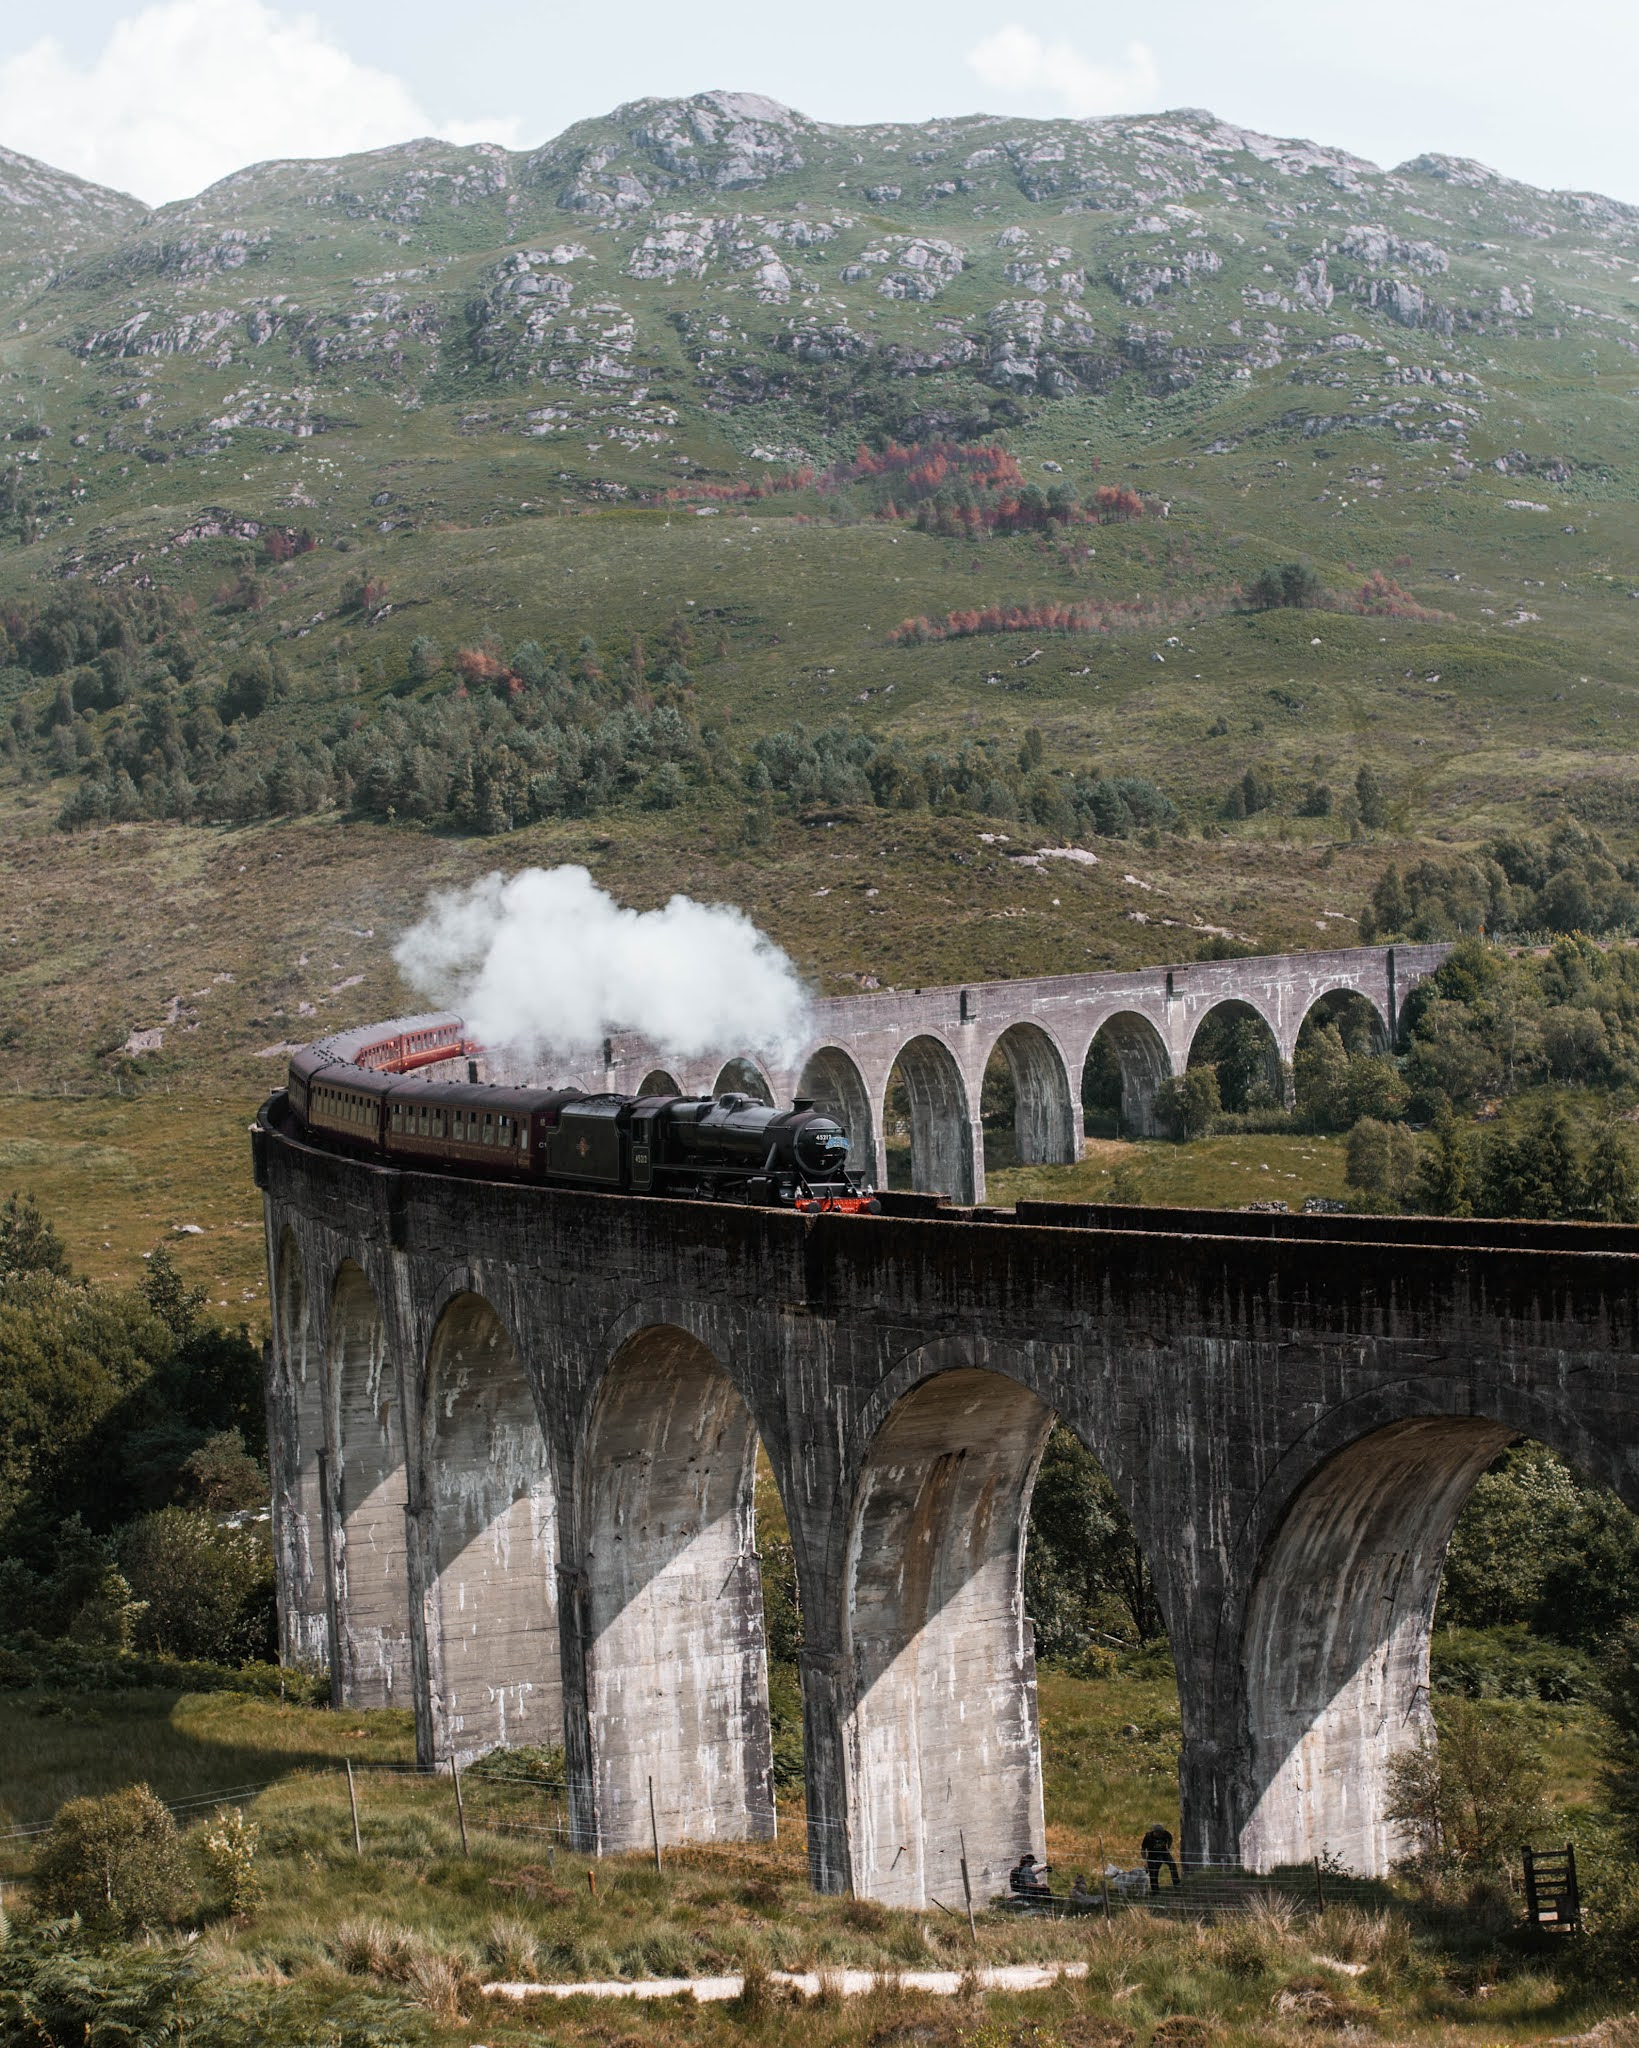 a photo of the hogwarts express from harry potter or the jacobite express steam train crossing glenfinnan viaduxt in the highlands of scotland